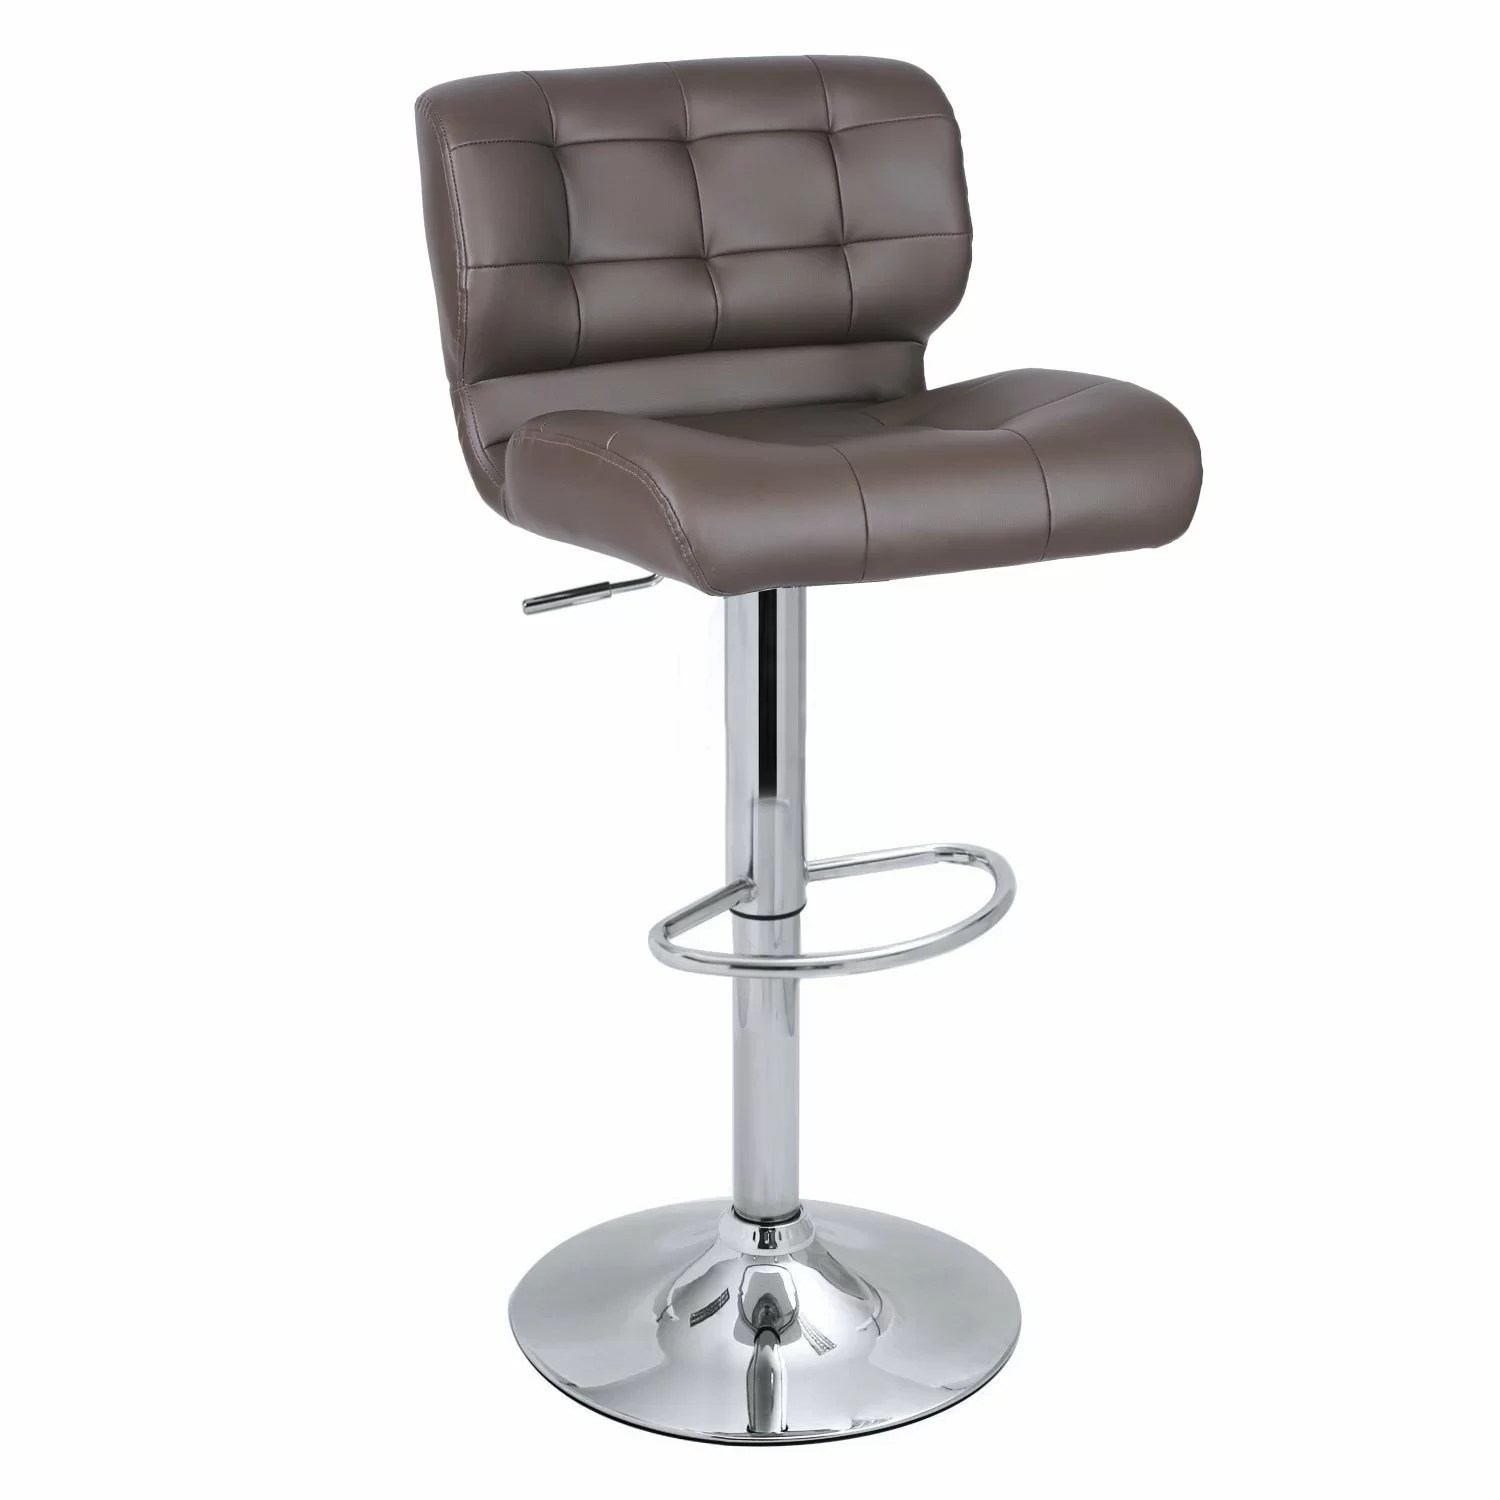 Adecotrading Adjustable Height Swivel Bar Stool & Reviews